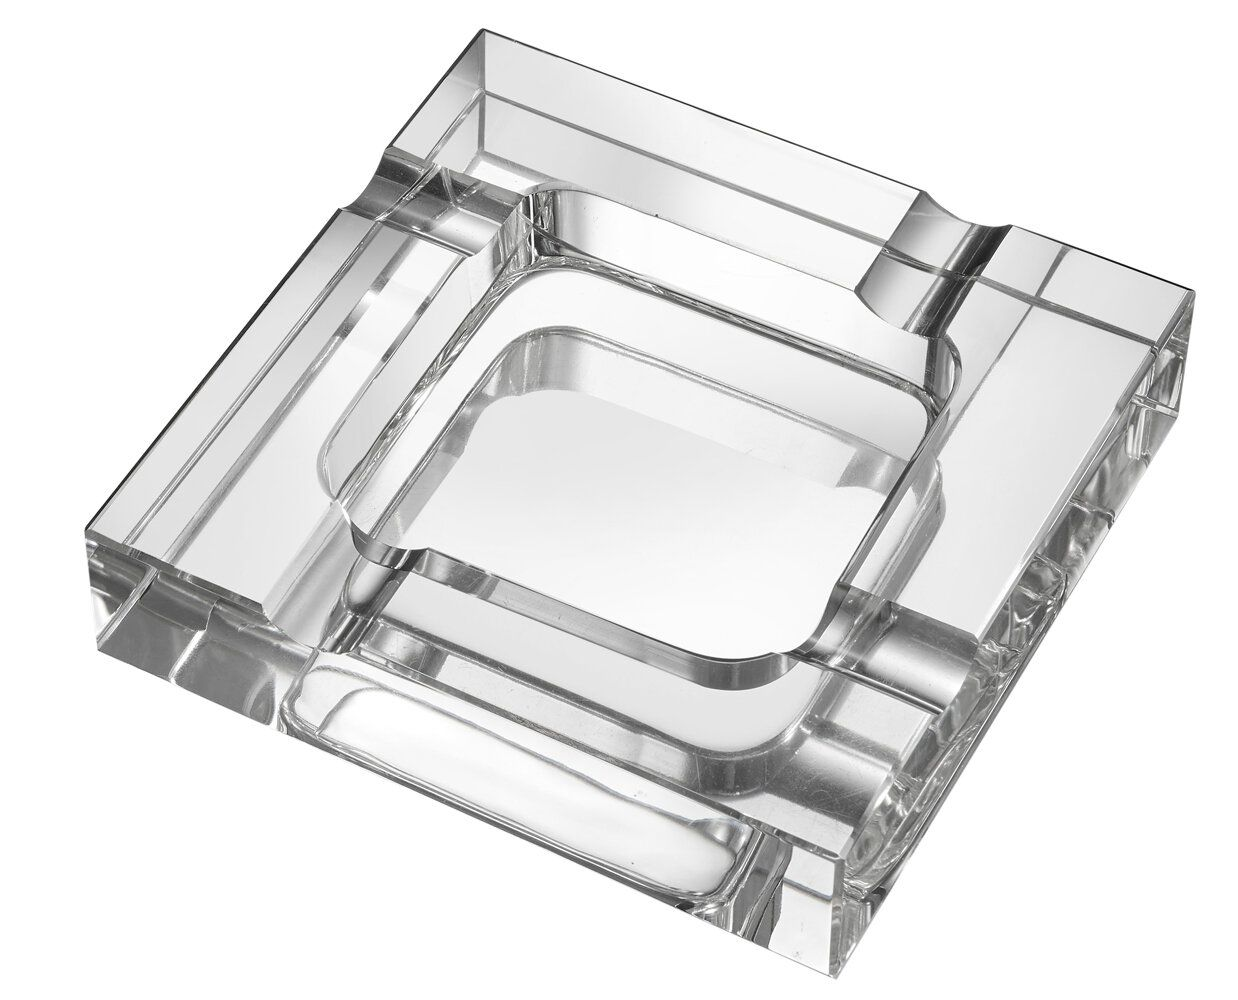 Freitag Square Crystal Cigar Ashtray In 2021 Cigar Ashtray Ashtray Cleaning Wipes